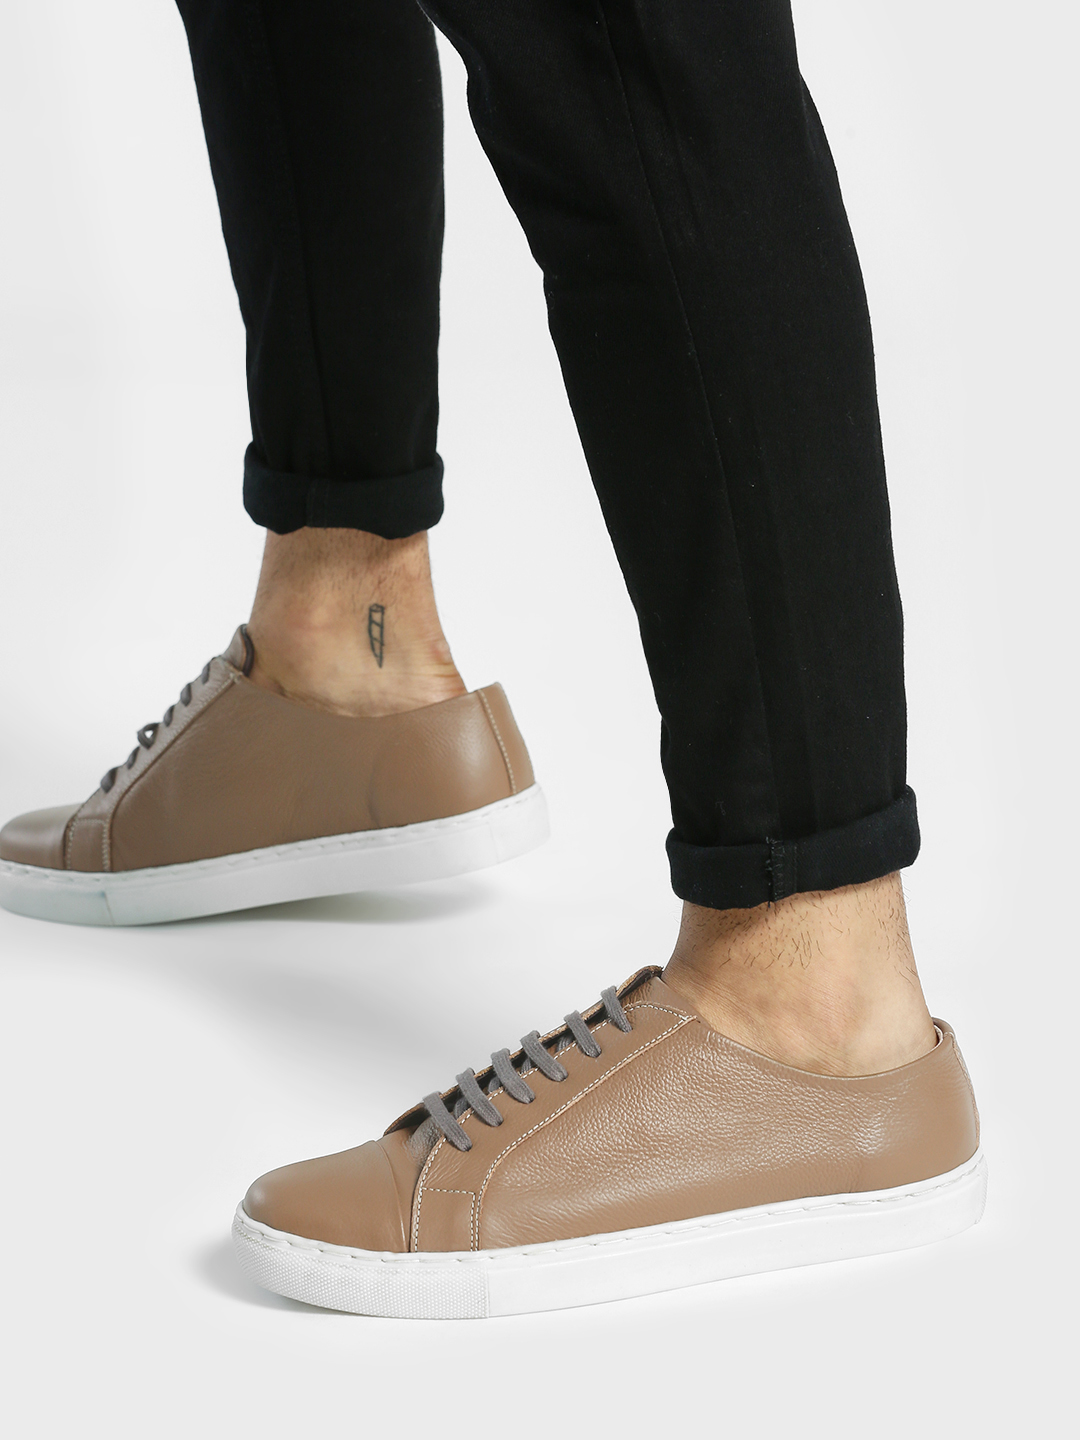 YOHO Brown Basic Lace-Up Leather Sneakers 1